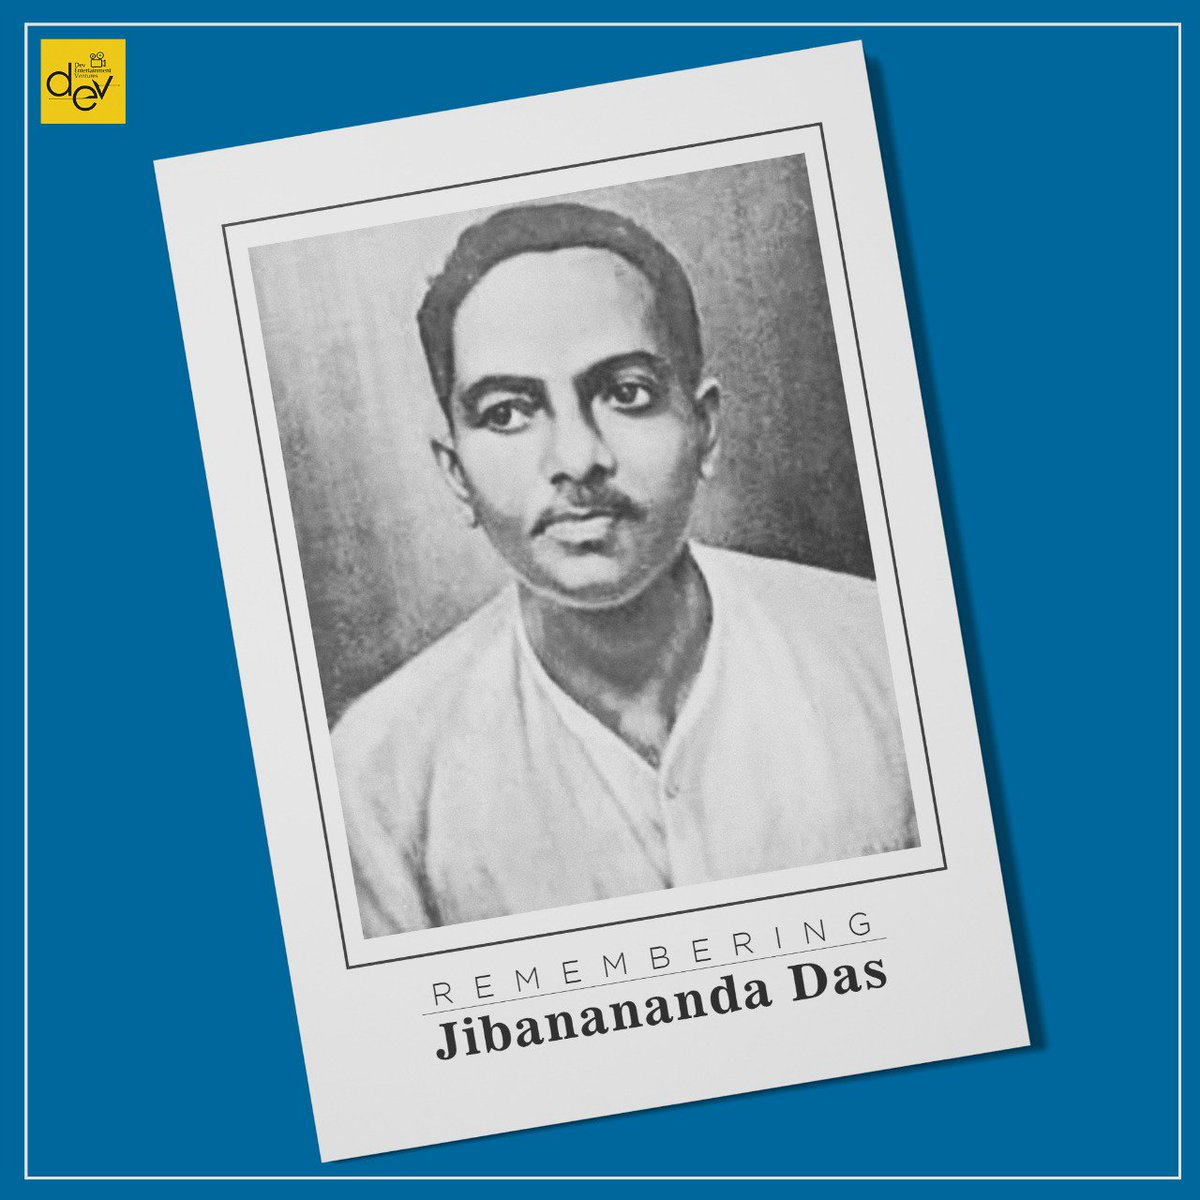 Remembering Legendary Bengali Poet, Writer and Novelist Jibananda Das on his 119th Birth Anniversary. His creations will remain in our heart forever. � #JibanandaDas